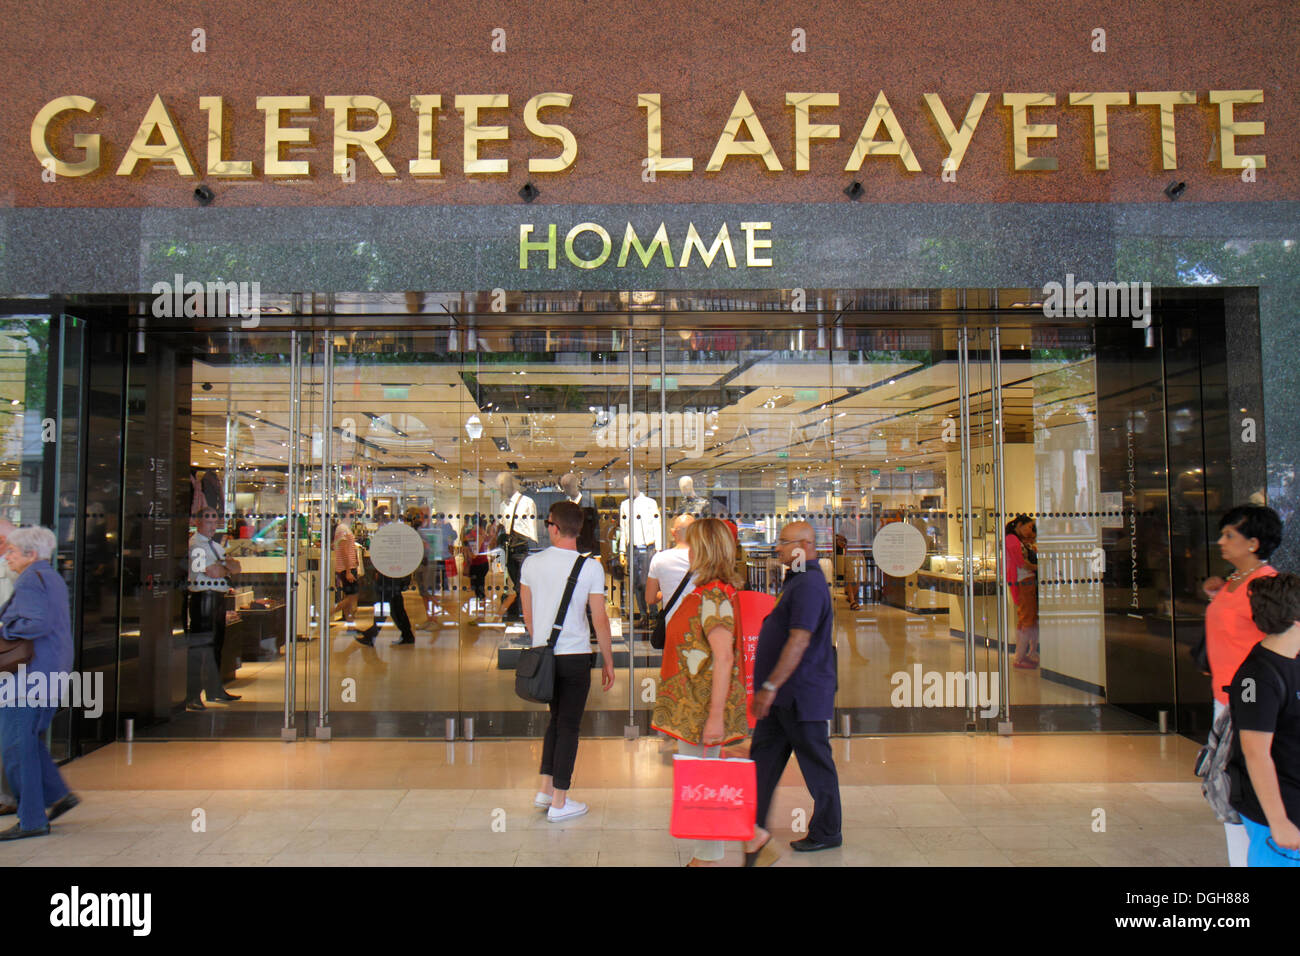 Paris France Europe French 9th arrondissement Boulevard Haussmann Galeries Lafayette department store shopping front entrance Ho - Stock Image